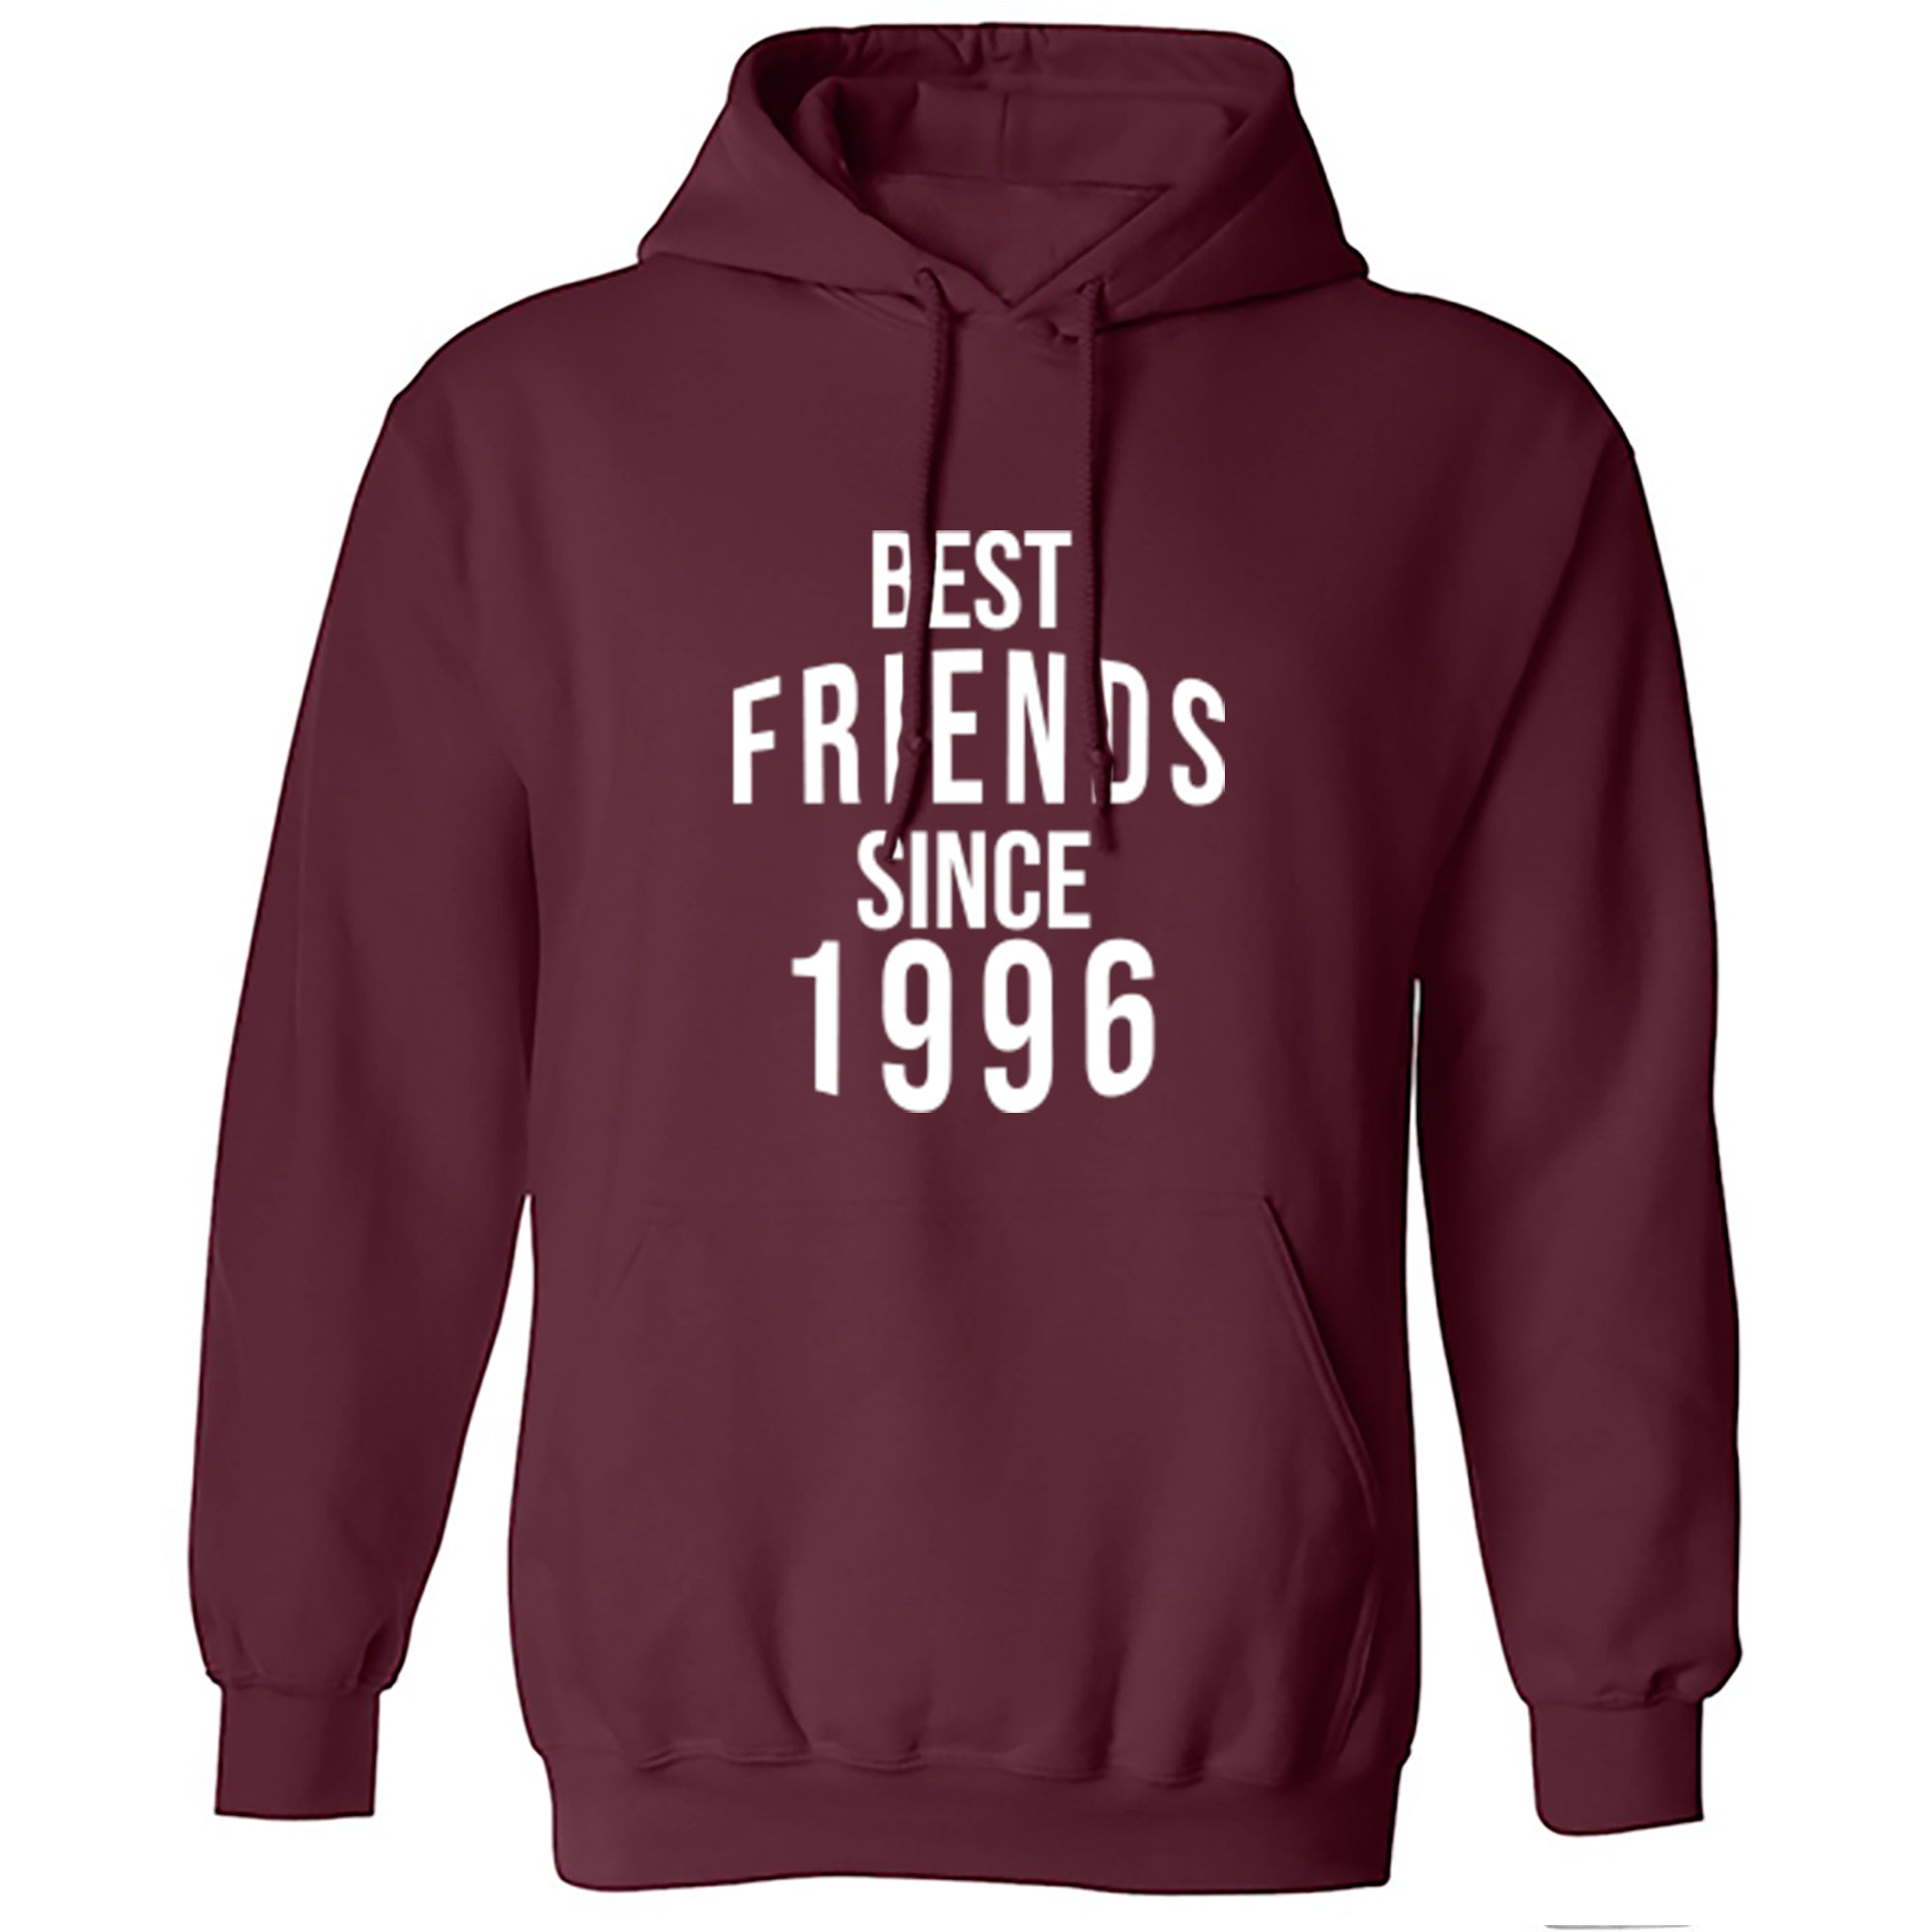 Best Friends Since 1996 Unisex Hoodie S0575 - Illustrated Identity Ltd.